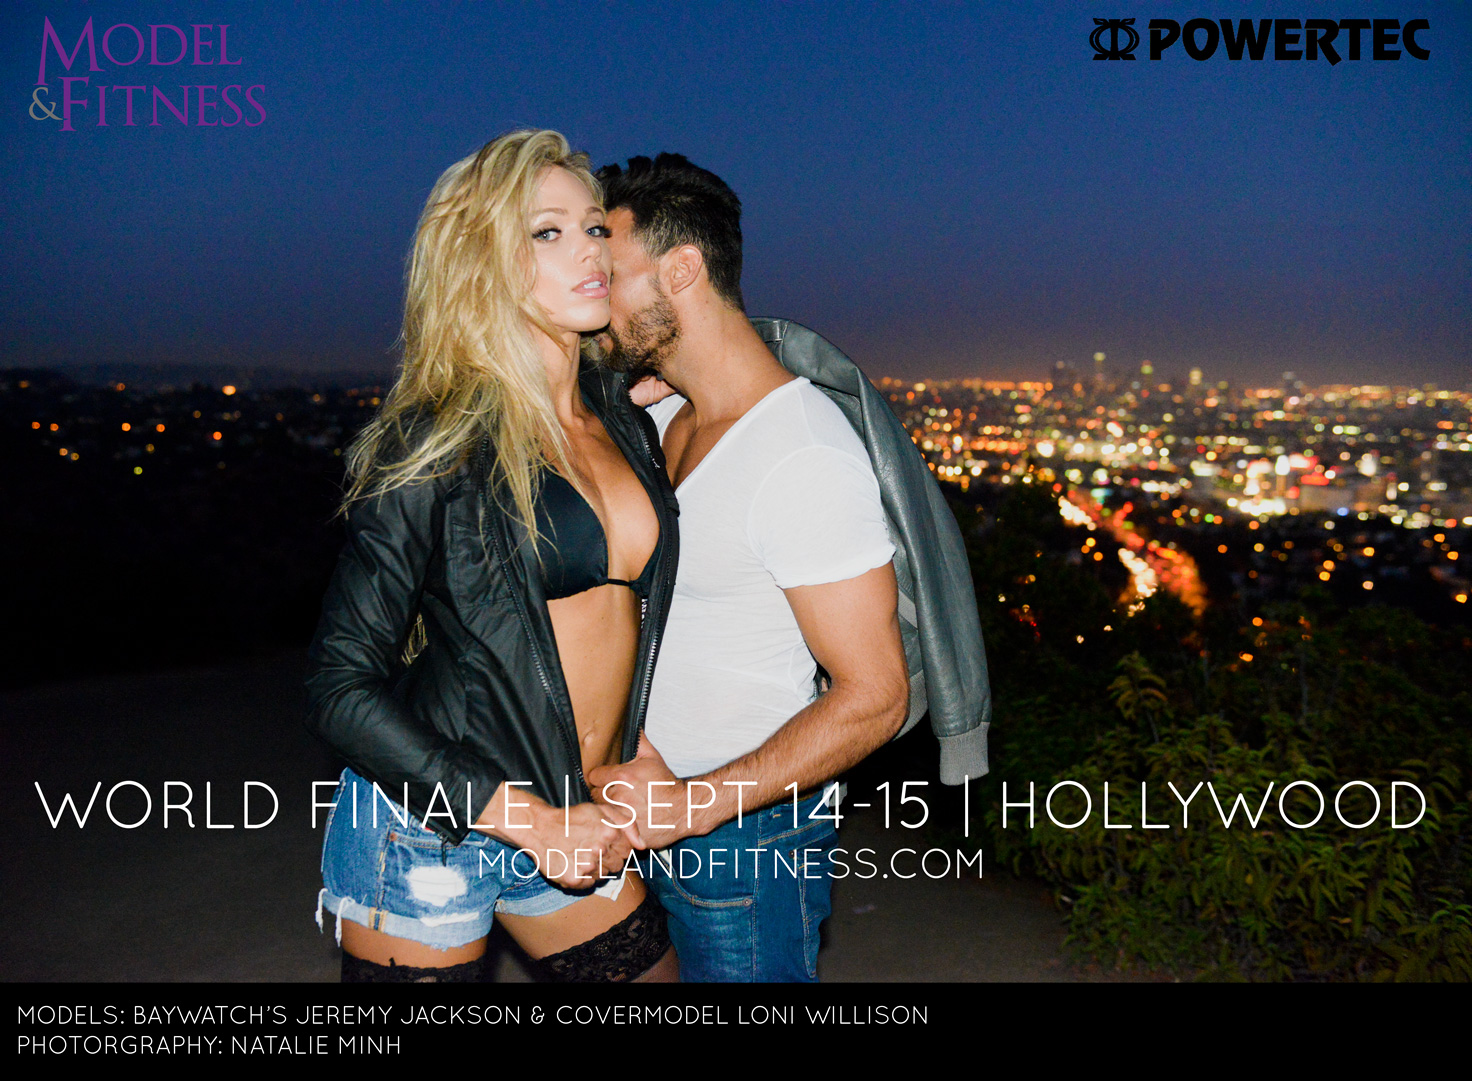 Jeremy Jackson and Covermodel Loni Willison